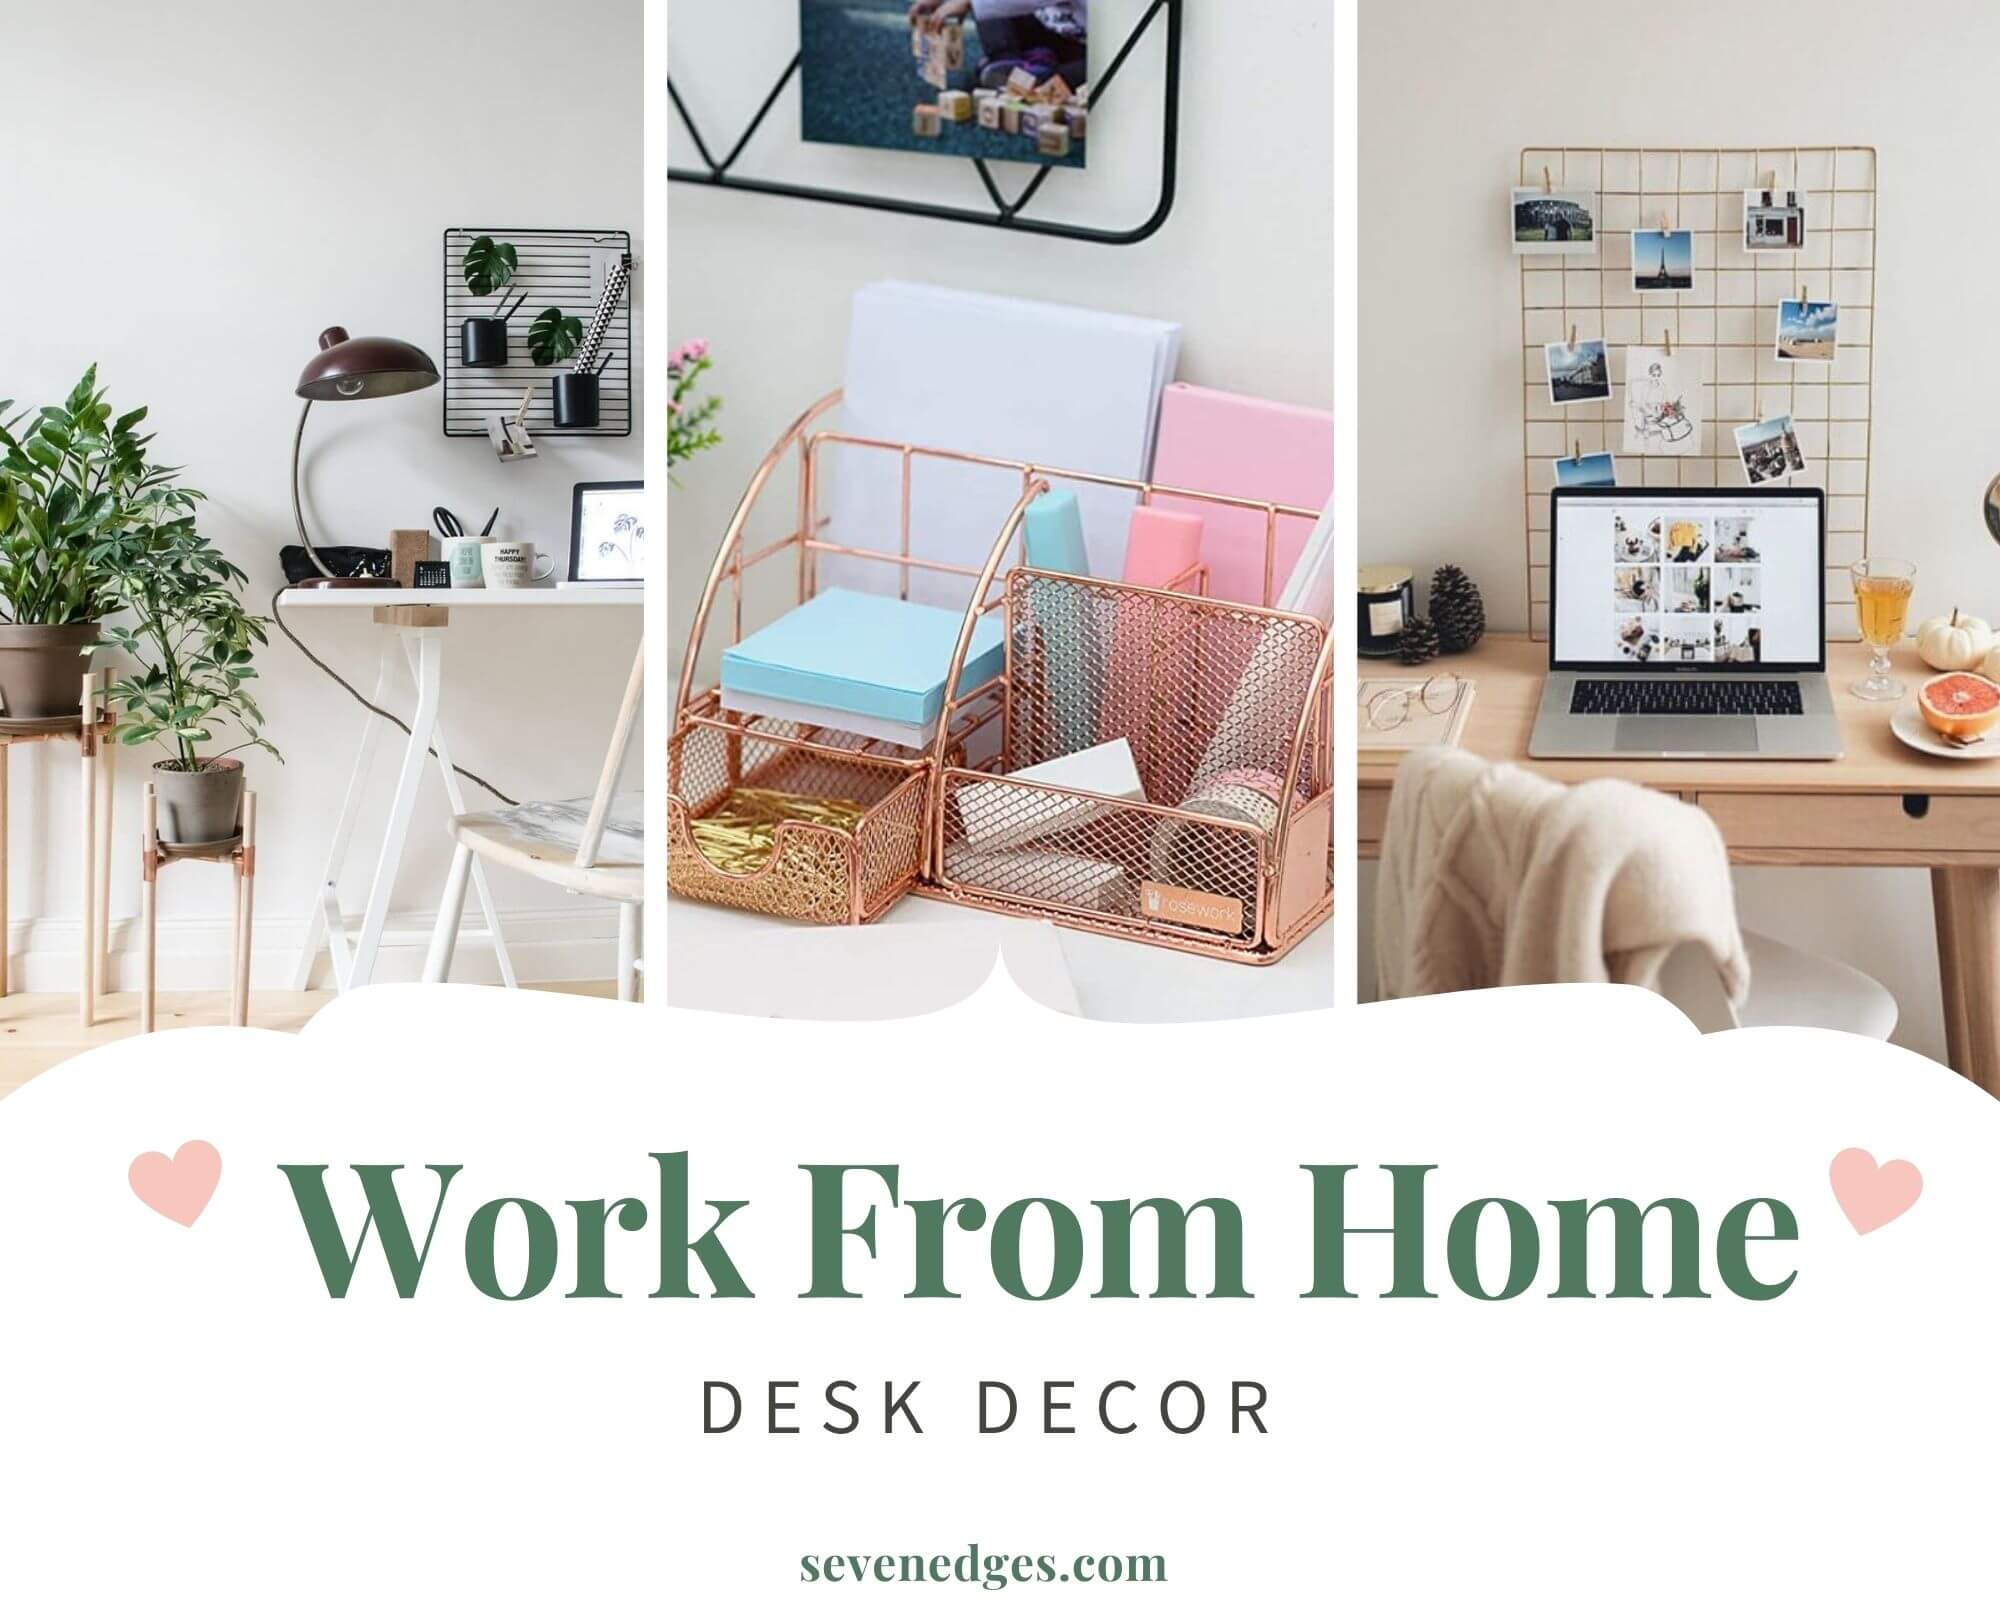 Work from home desk décor